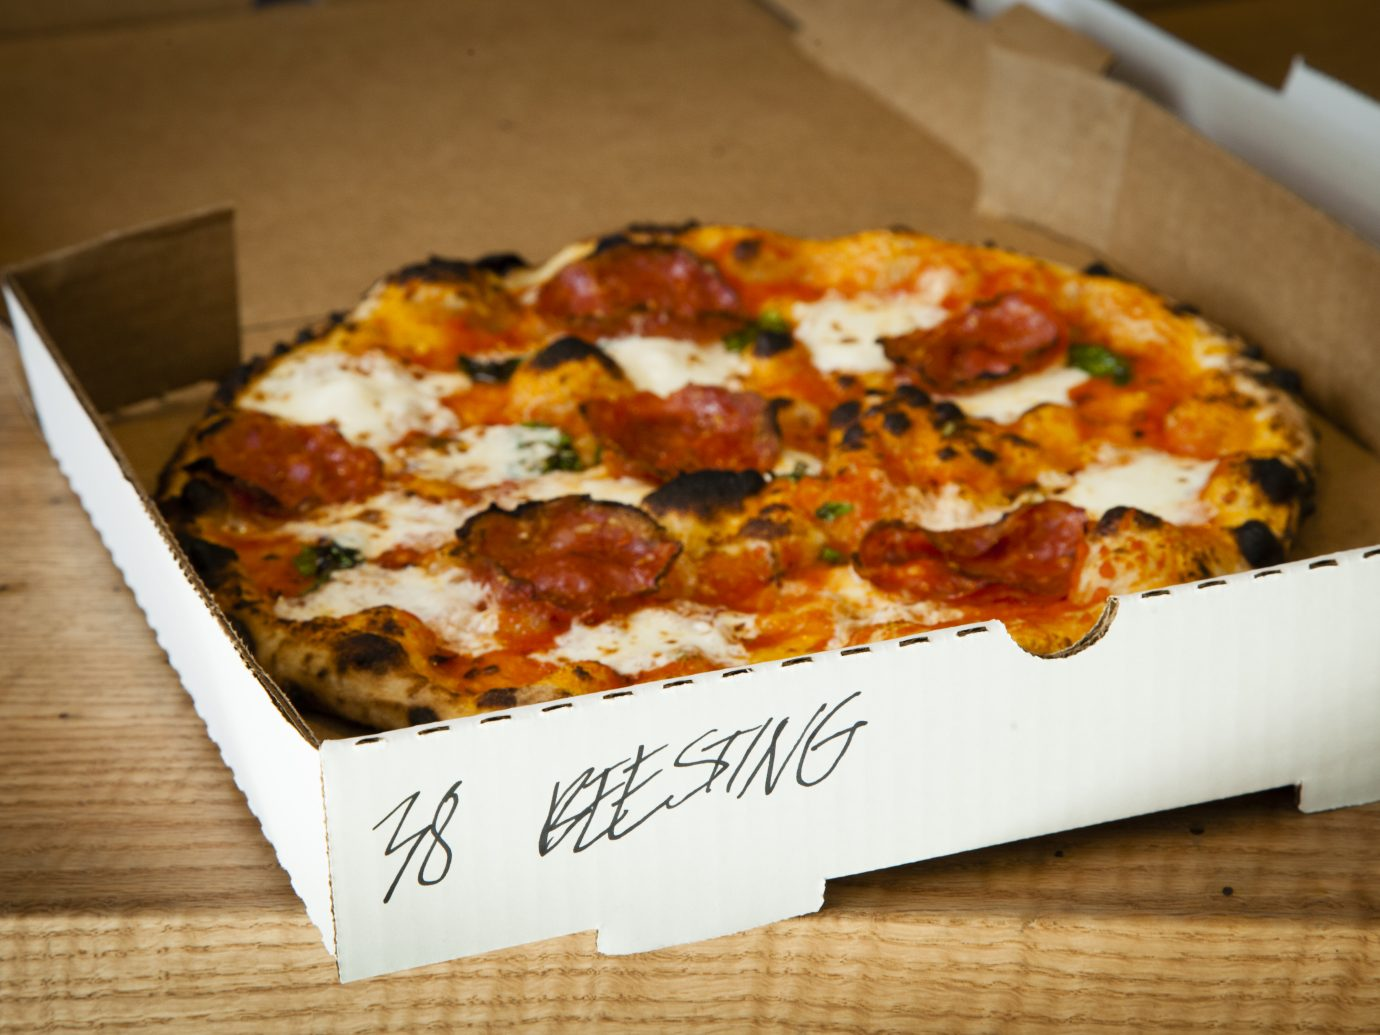 Roberta's Take-Out and Delivery Space, Brooklyn, NY; Beesting pizza in a to-go box. (Photograph by Deidre Schoo)